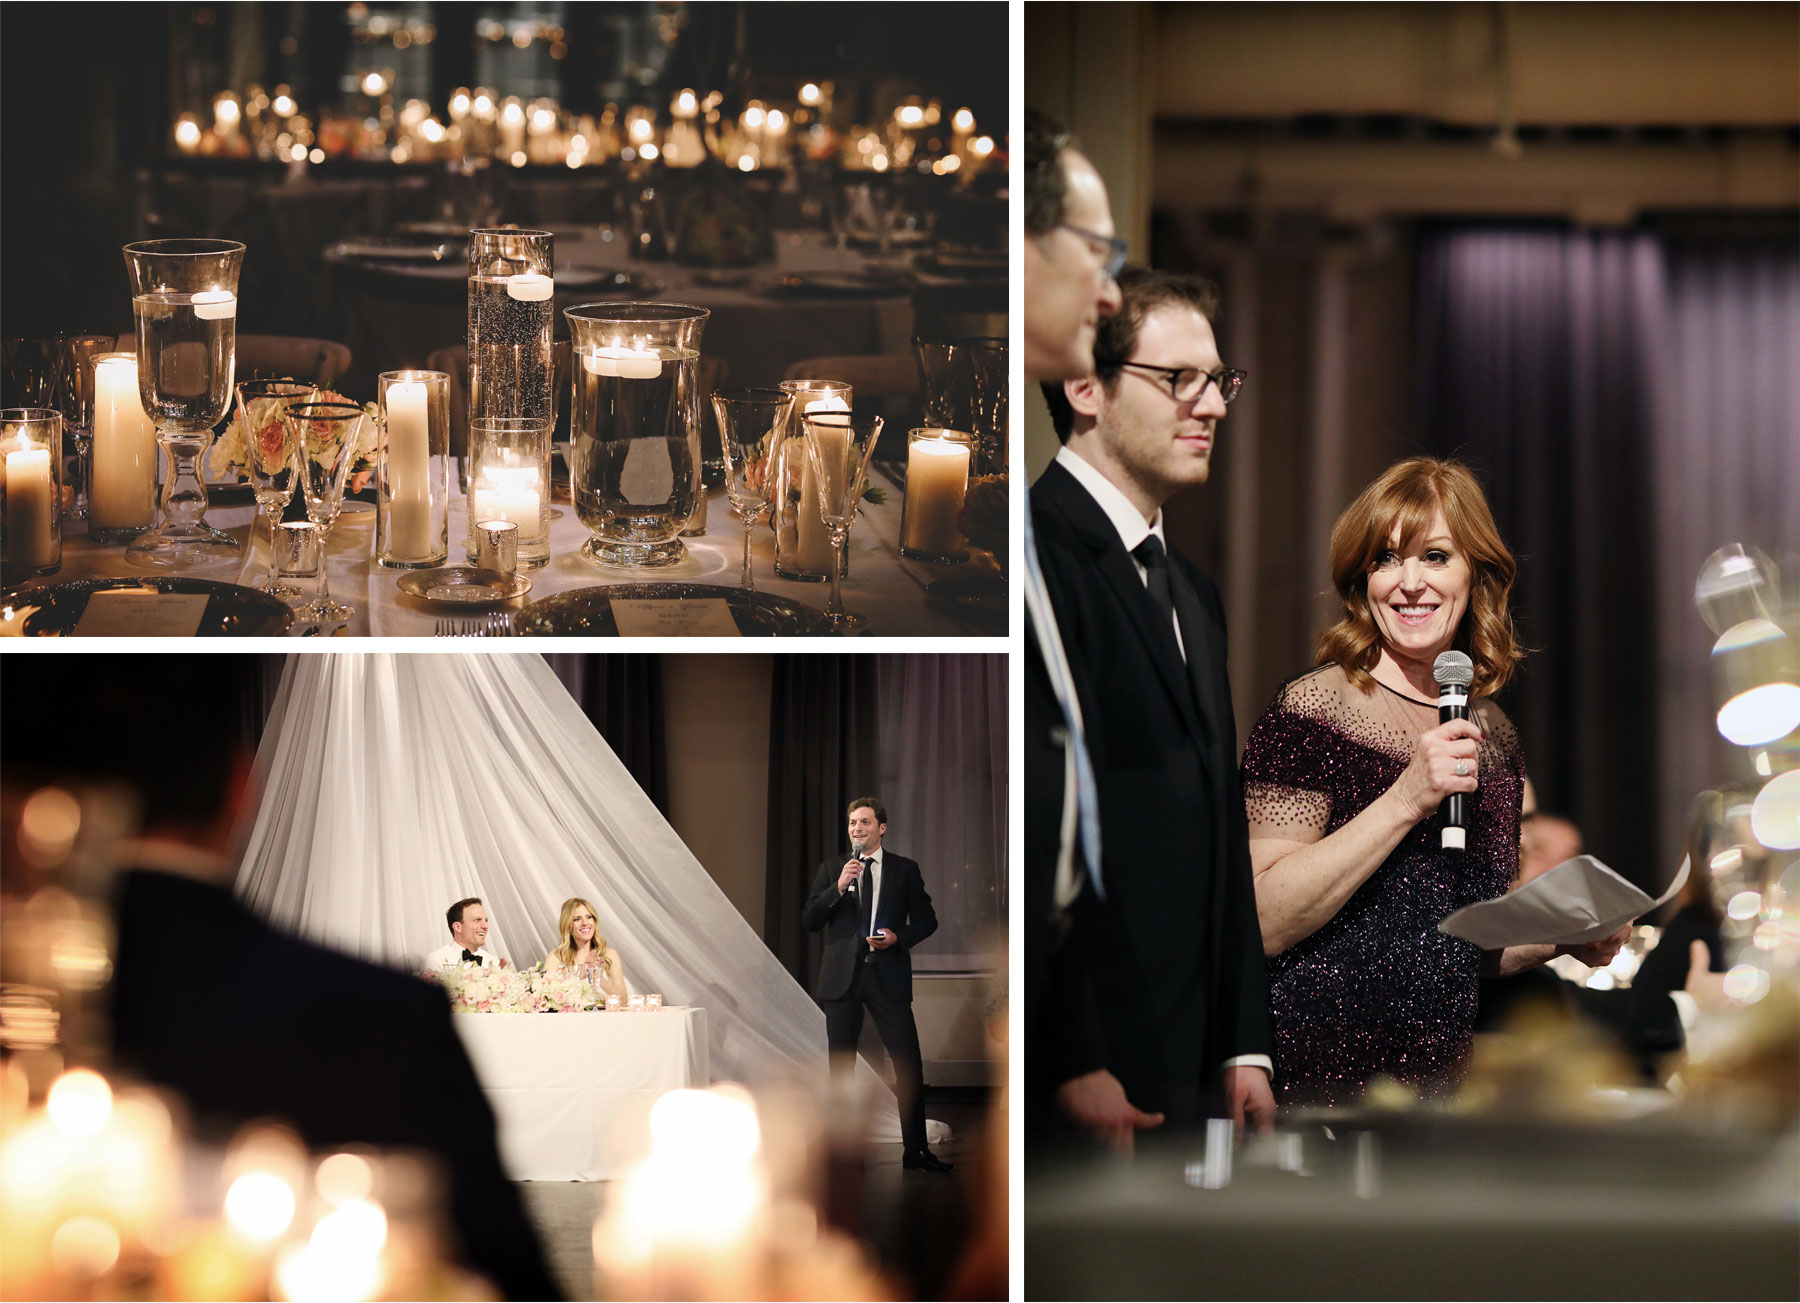 19-Minneapolis-Minnesota-Wedding-Photographer-by-Vick-Photography--Reception-Toasts-Winter-Wedding-Machine-Shop-Alyssa-and-Garron.jpg